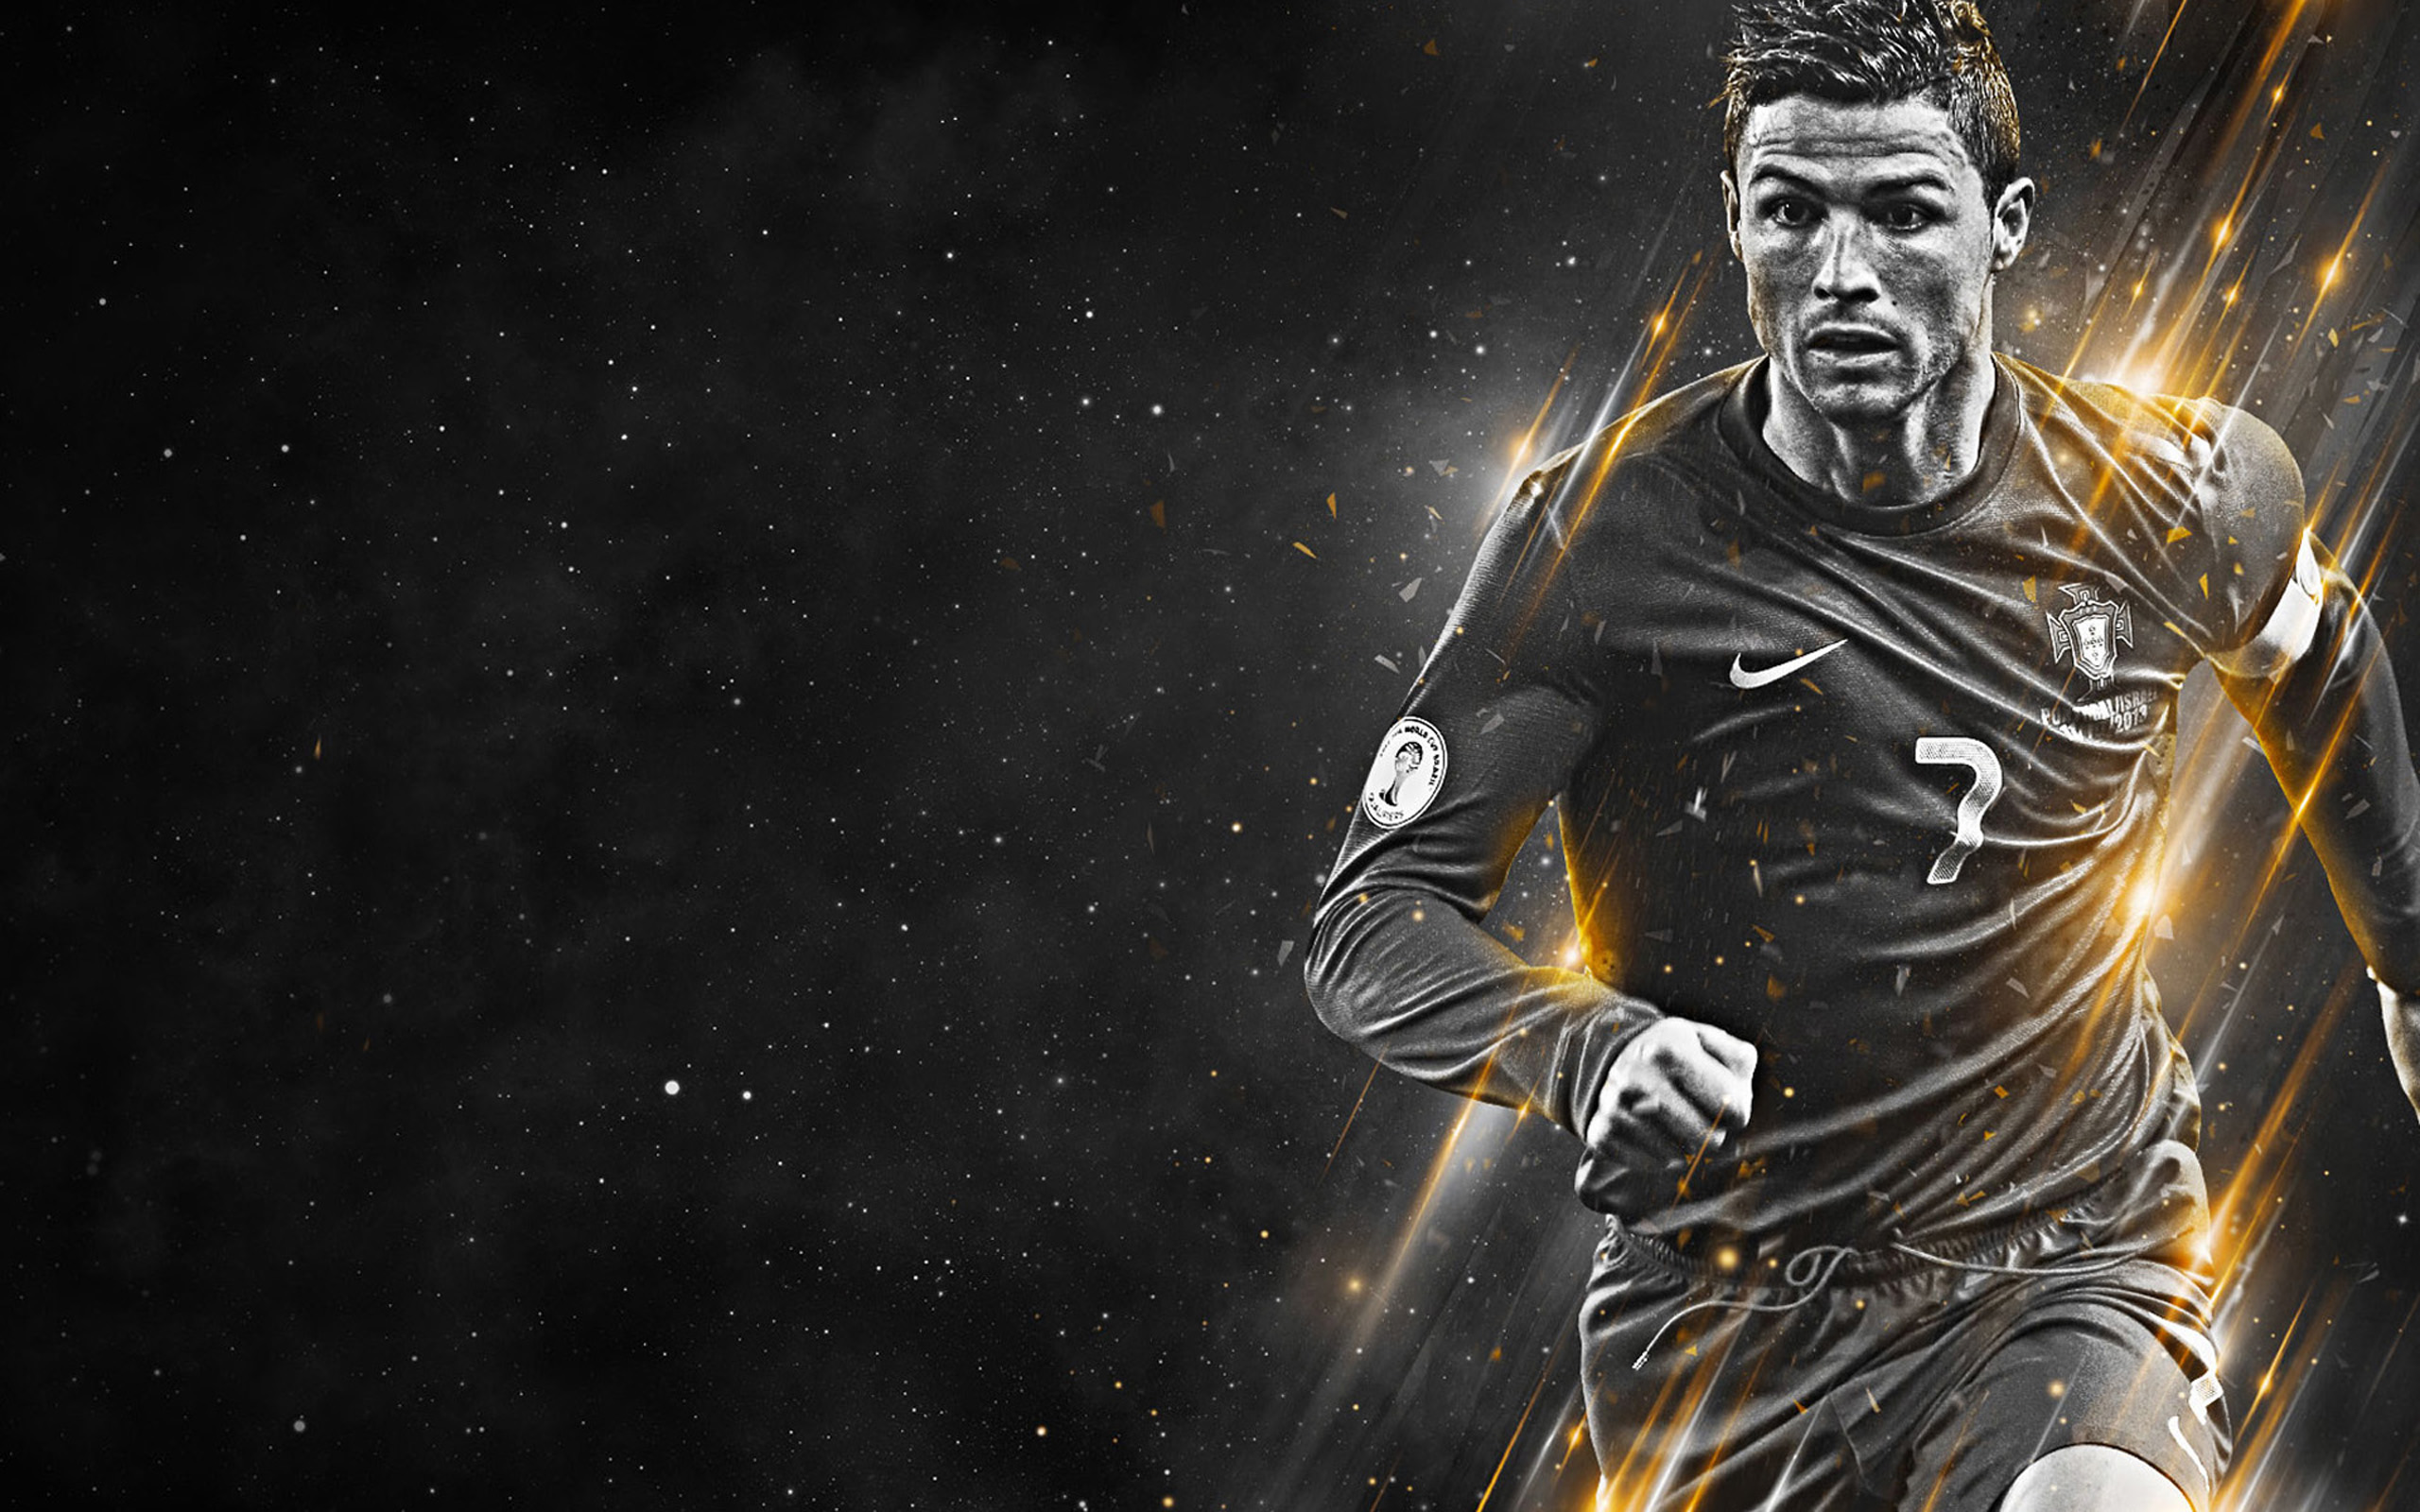 Cristiano Ronaldo black and white wallpaper